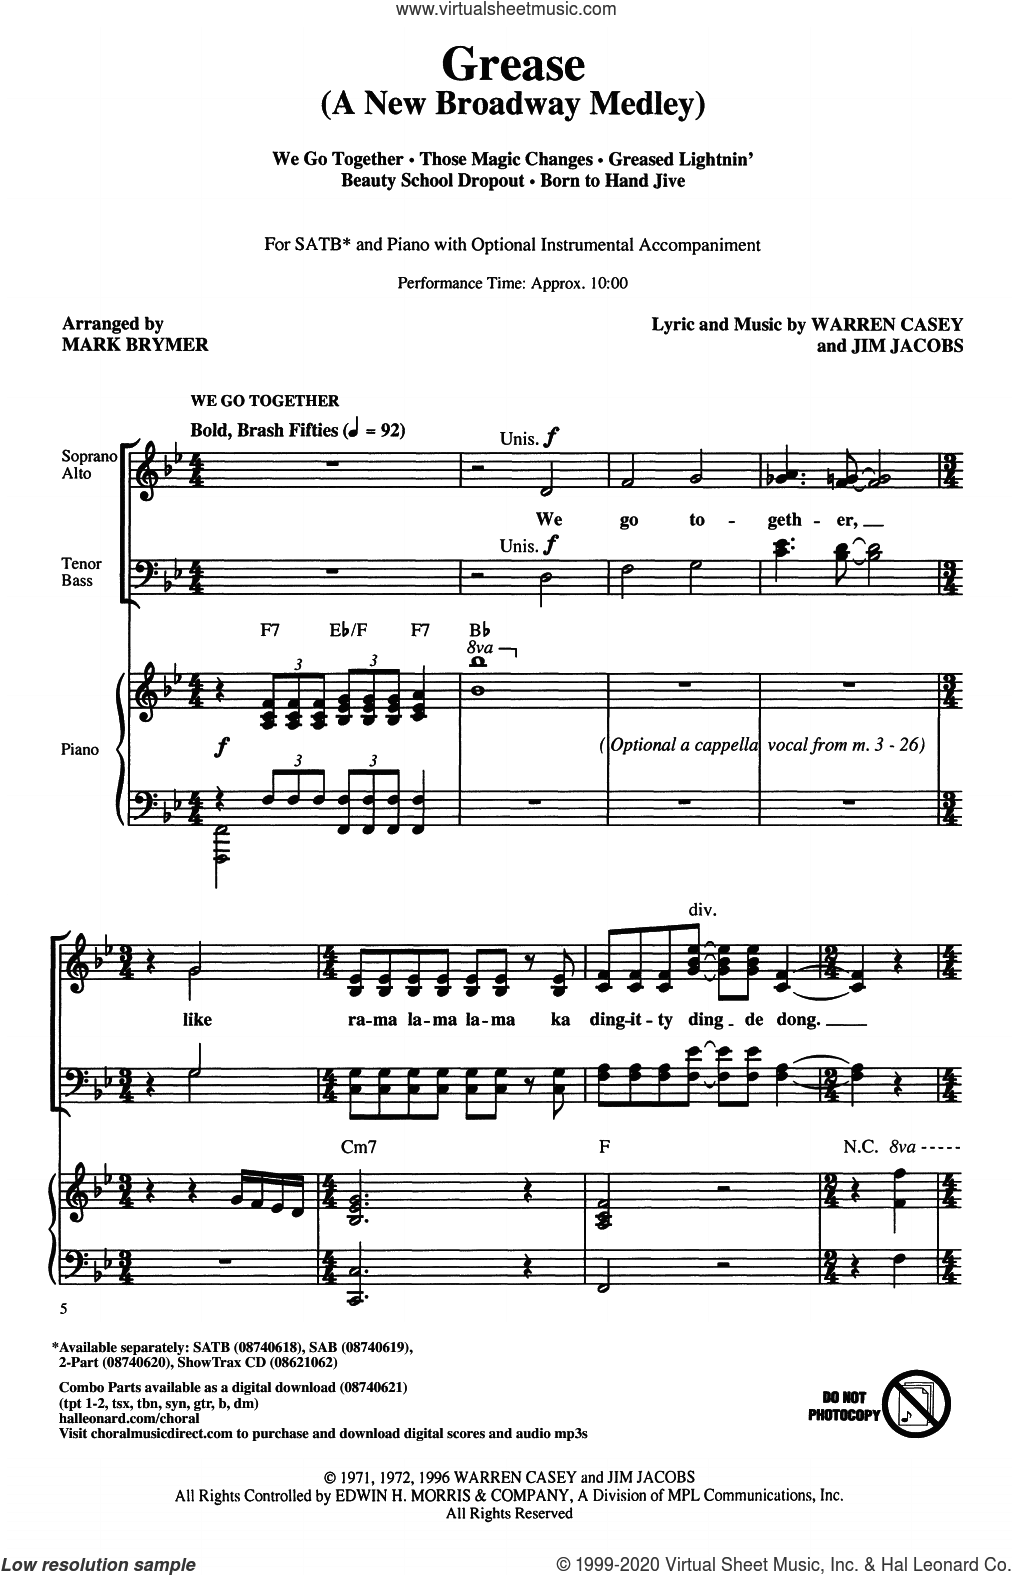 Grease: A New Broadway Medley (arr. Mark Brymer) sheet music for choir (SATB: soprano, alto, tenor, bass) by Jim Jacobs, Mark Brymer, Jim Jacobs & Warren Casey and Warren Casey, intermediate skill level